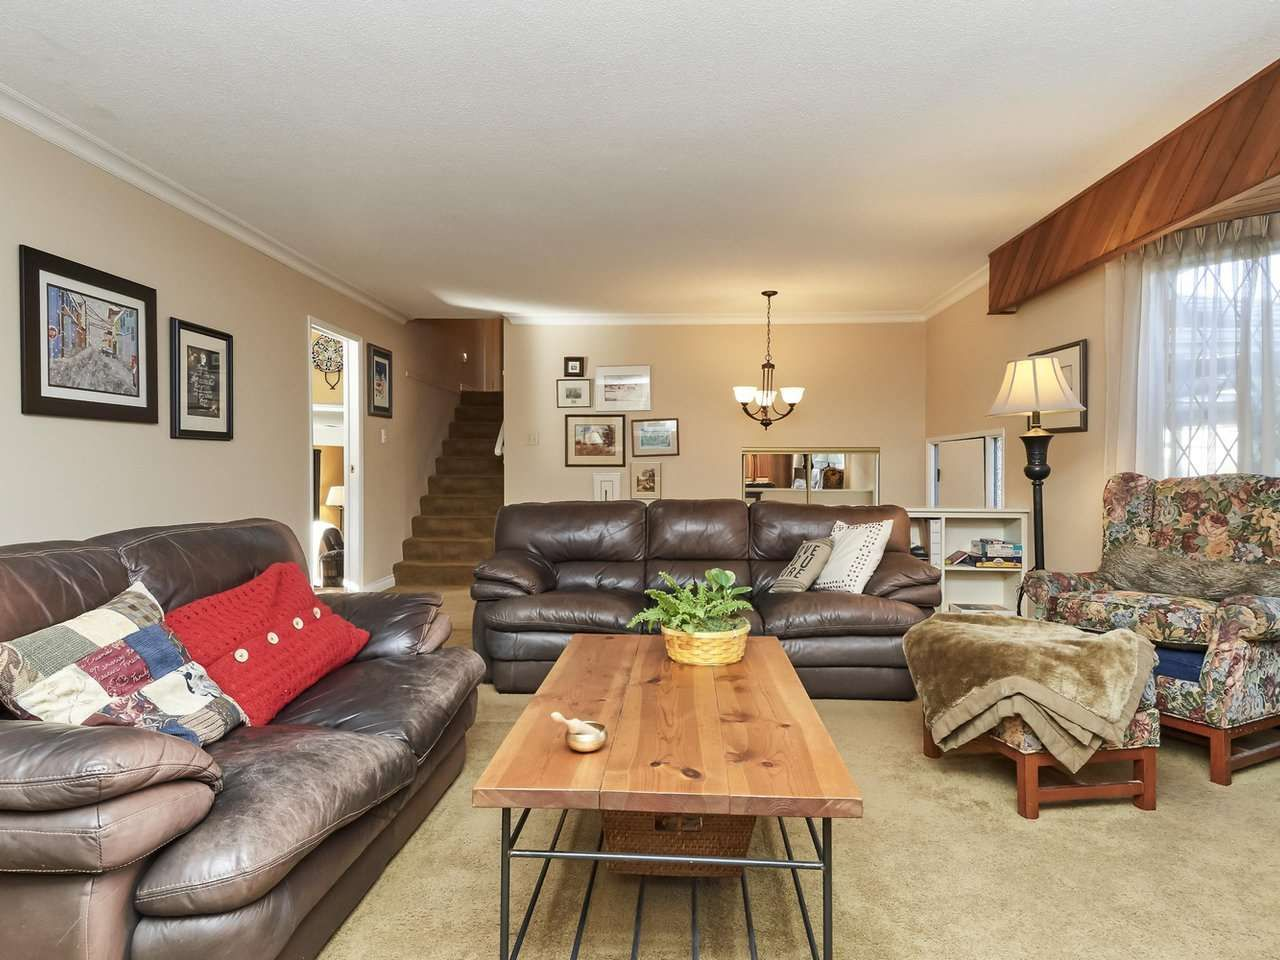 Photo 7: Photos: 4880 FORTUNE AVENUE in Richmond: Steveston North House for sale : MLS®# R2435063